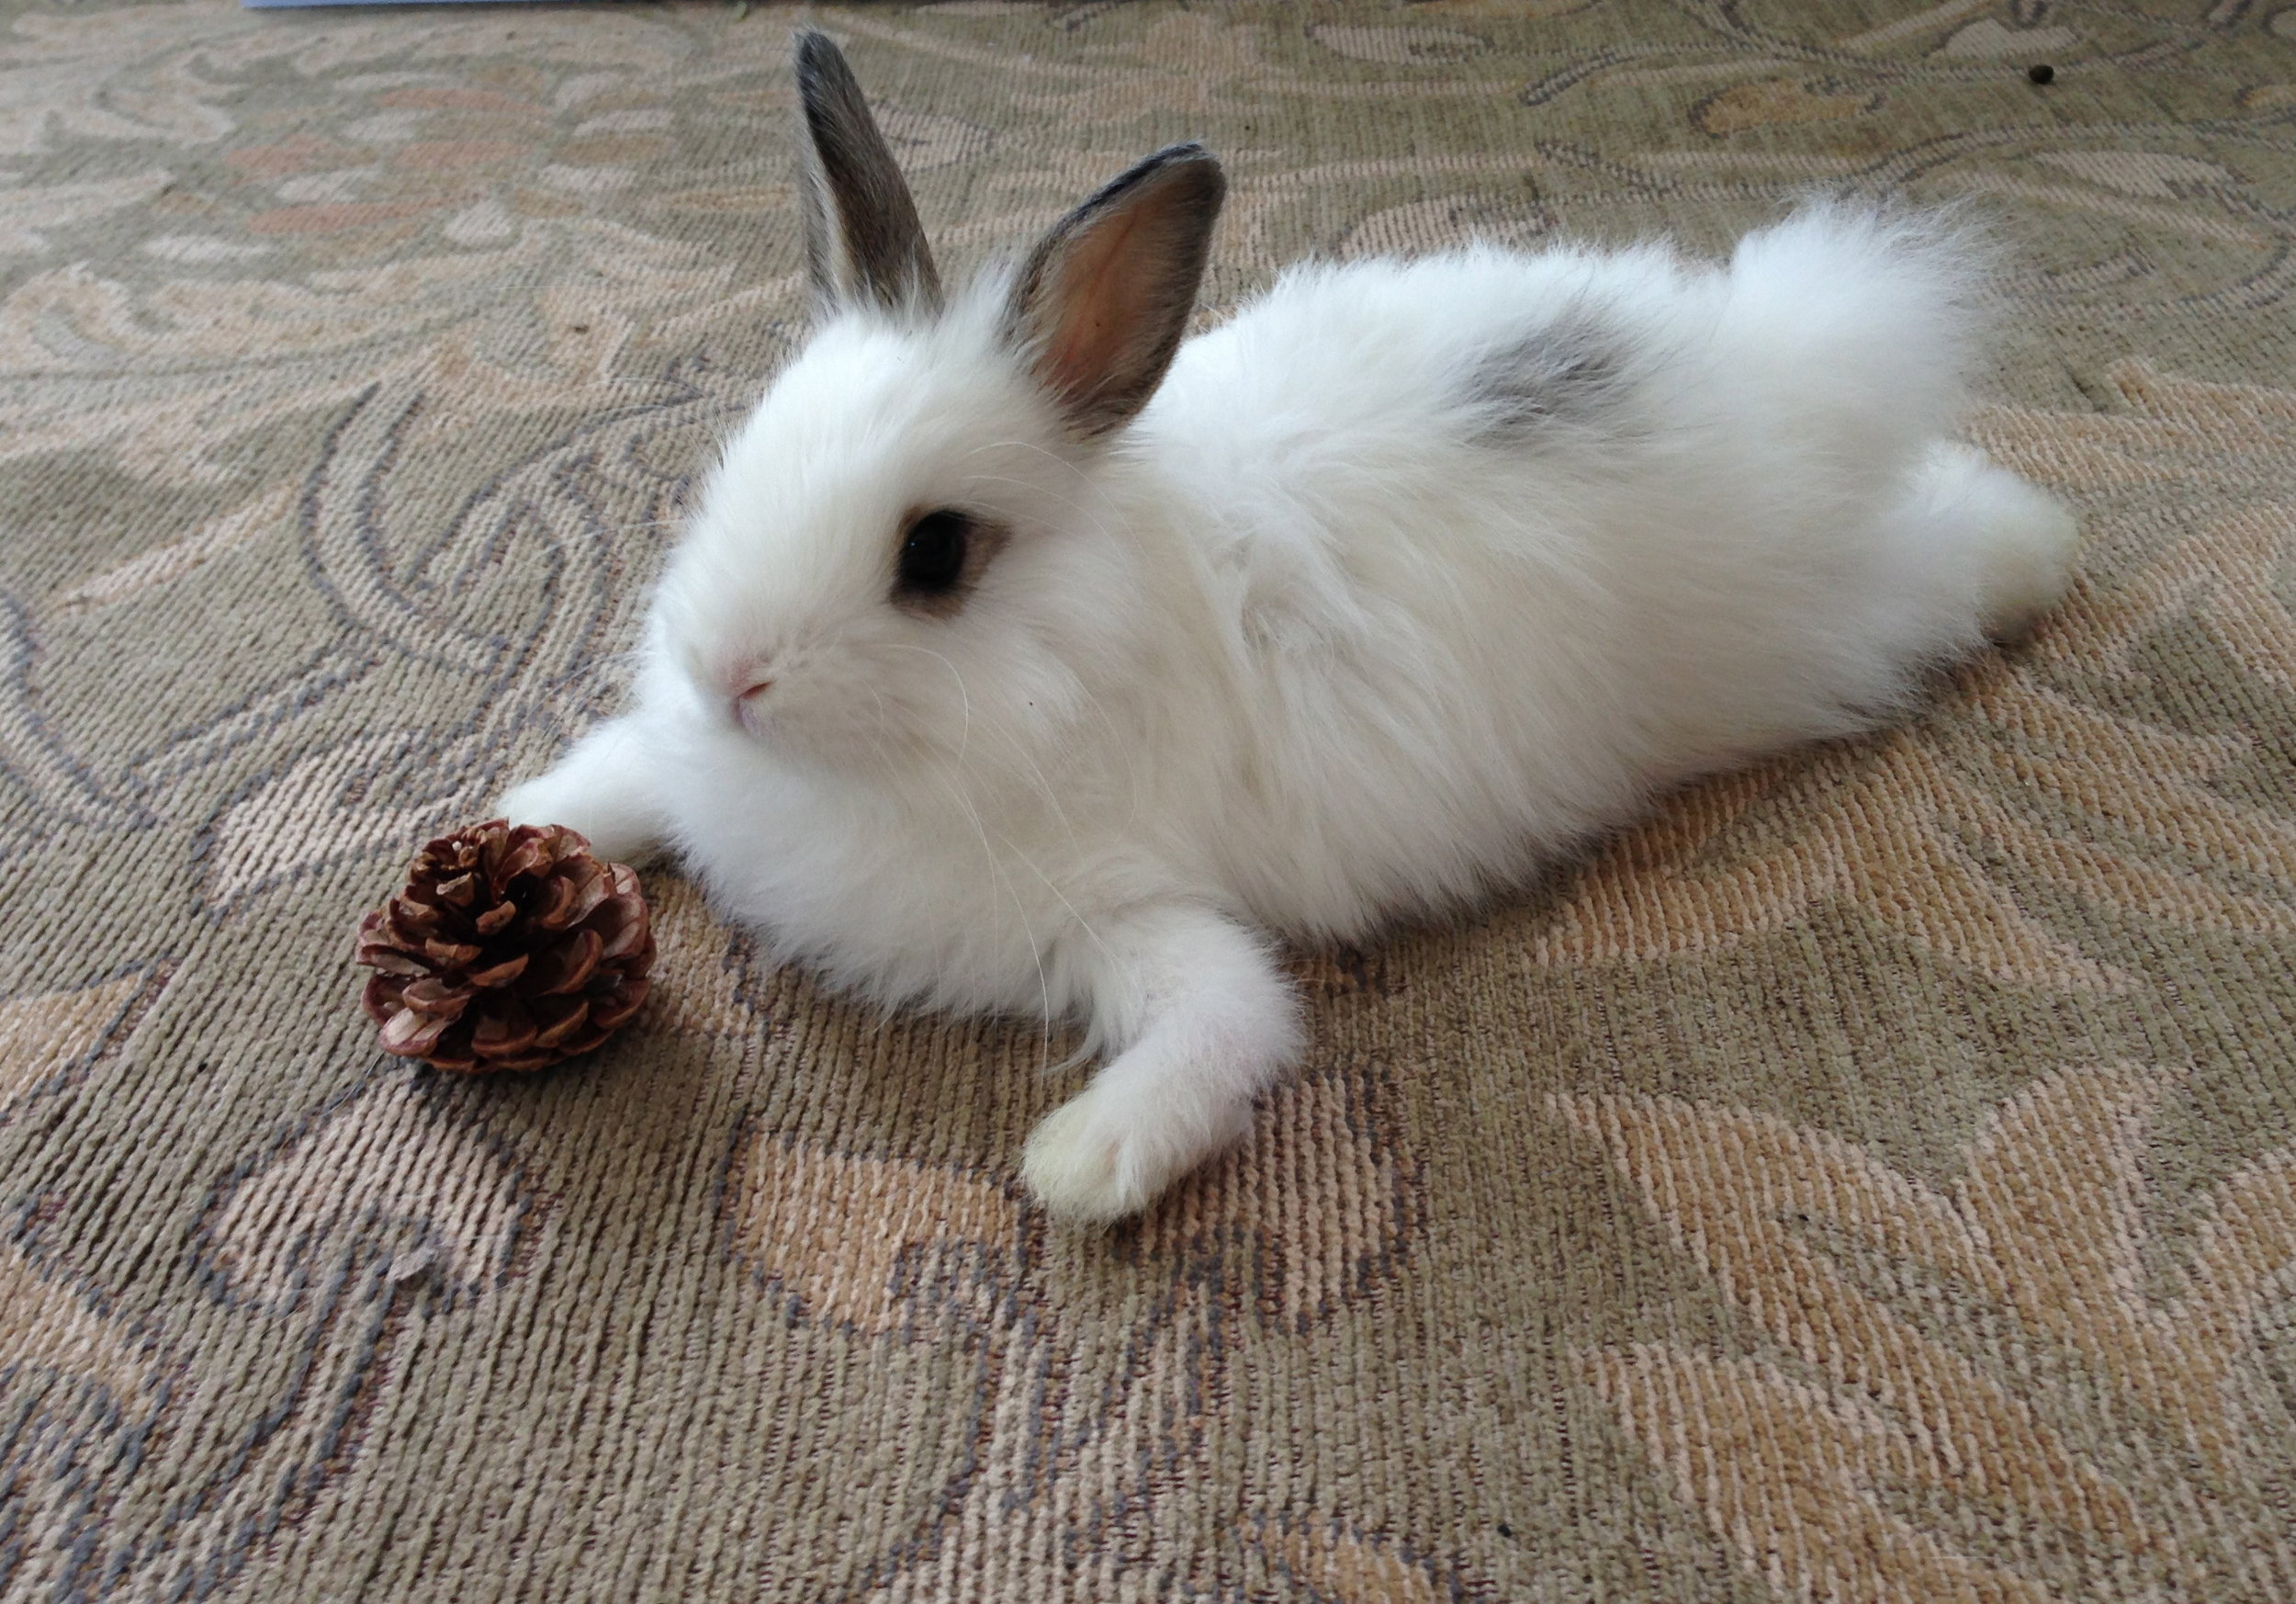 Bunny Hangs Out with Her Pinecone